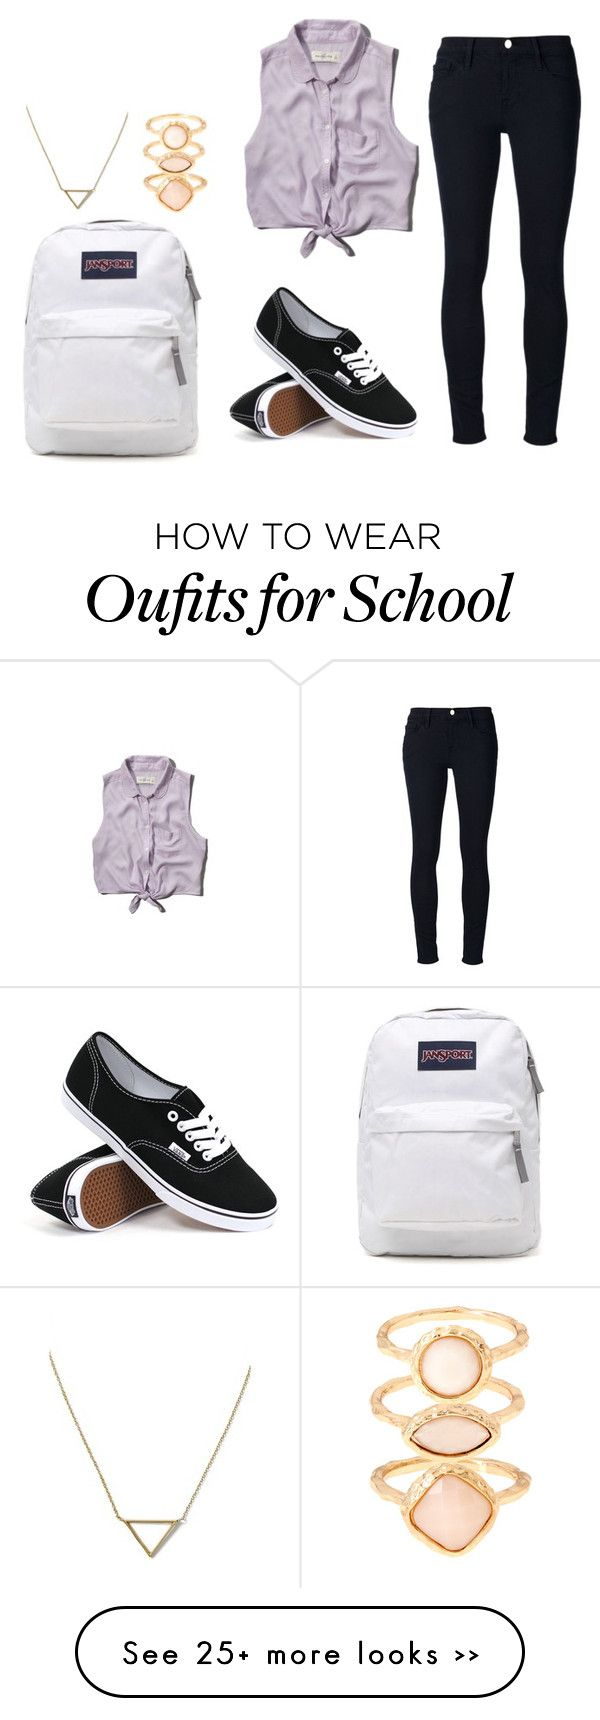 """""""third day of school outfit idea"""" by bubblygirl11 on Polyvore featuring Frame Denim, Abercrombie & Fitch, JanSport, Vans, Monsoon and Banana Republic"""